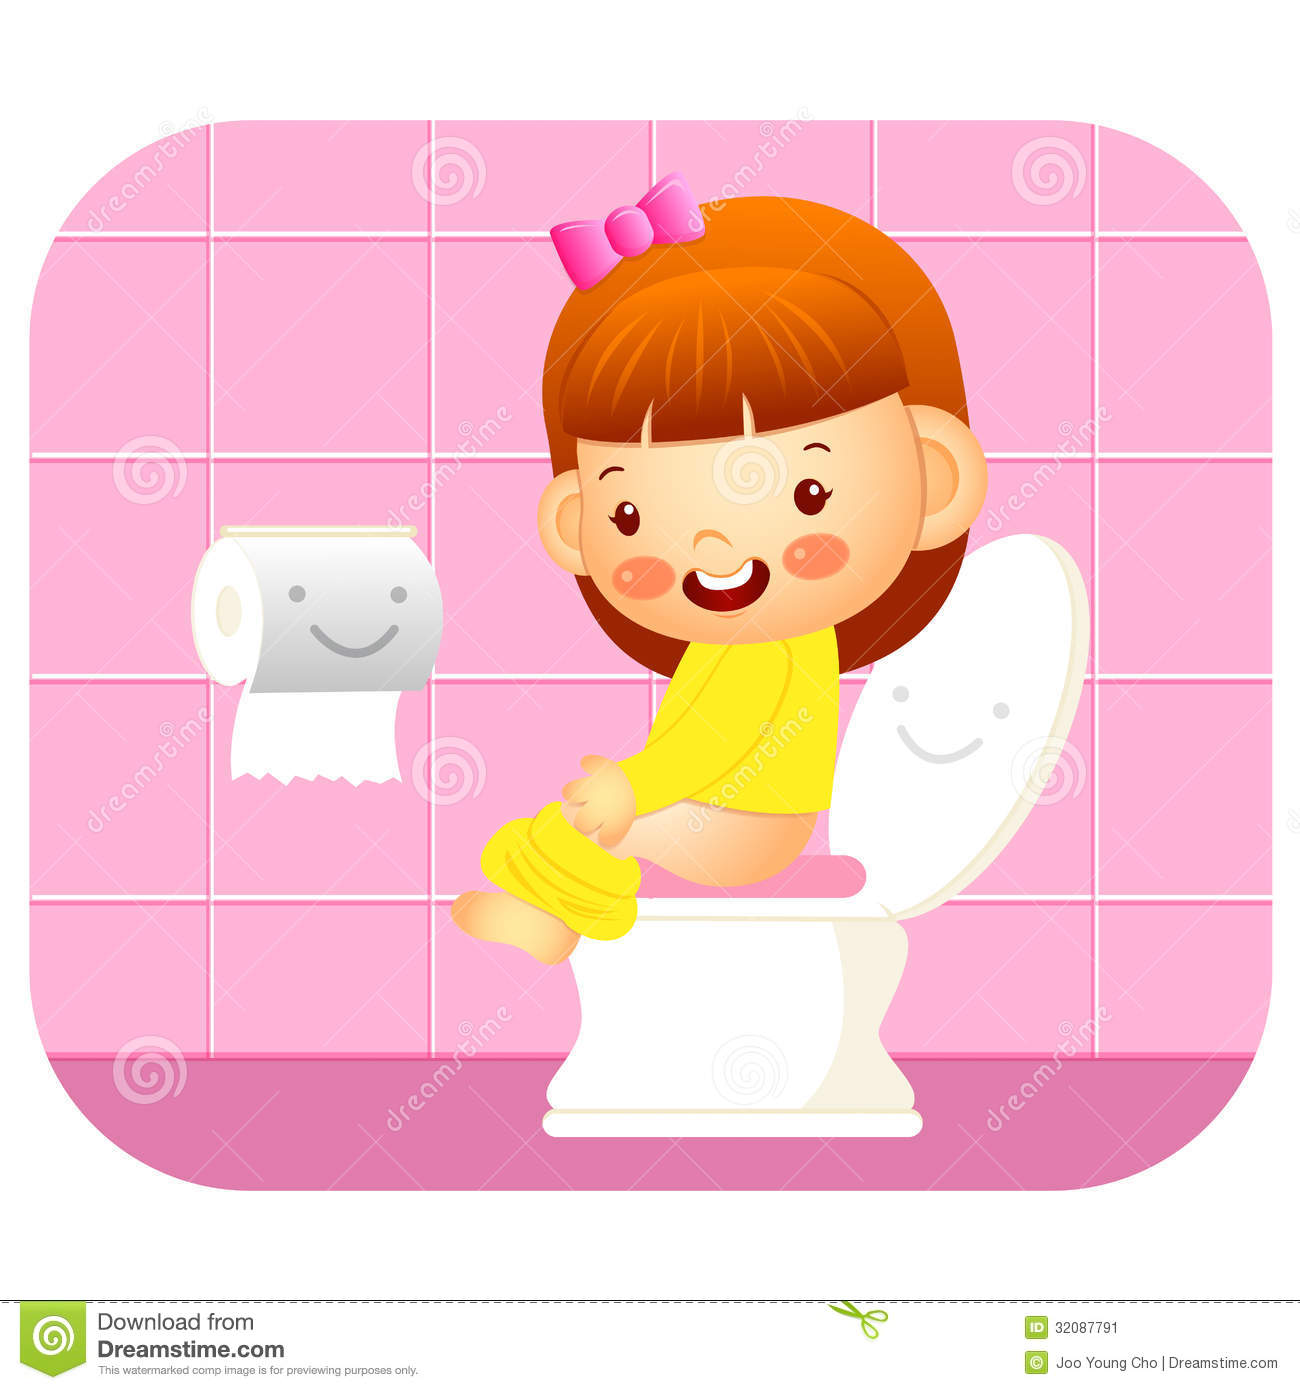 Stock Image I Go To The Bathroom Education And Life